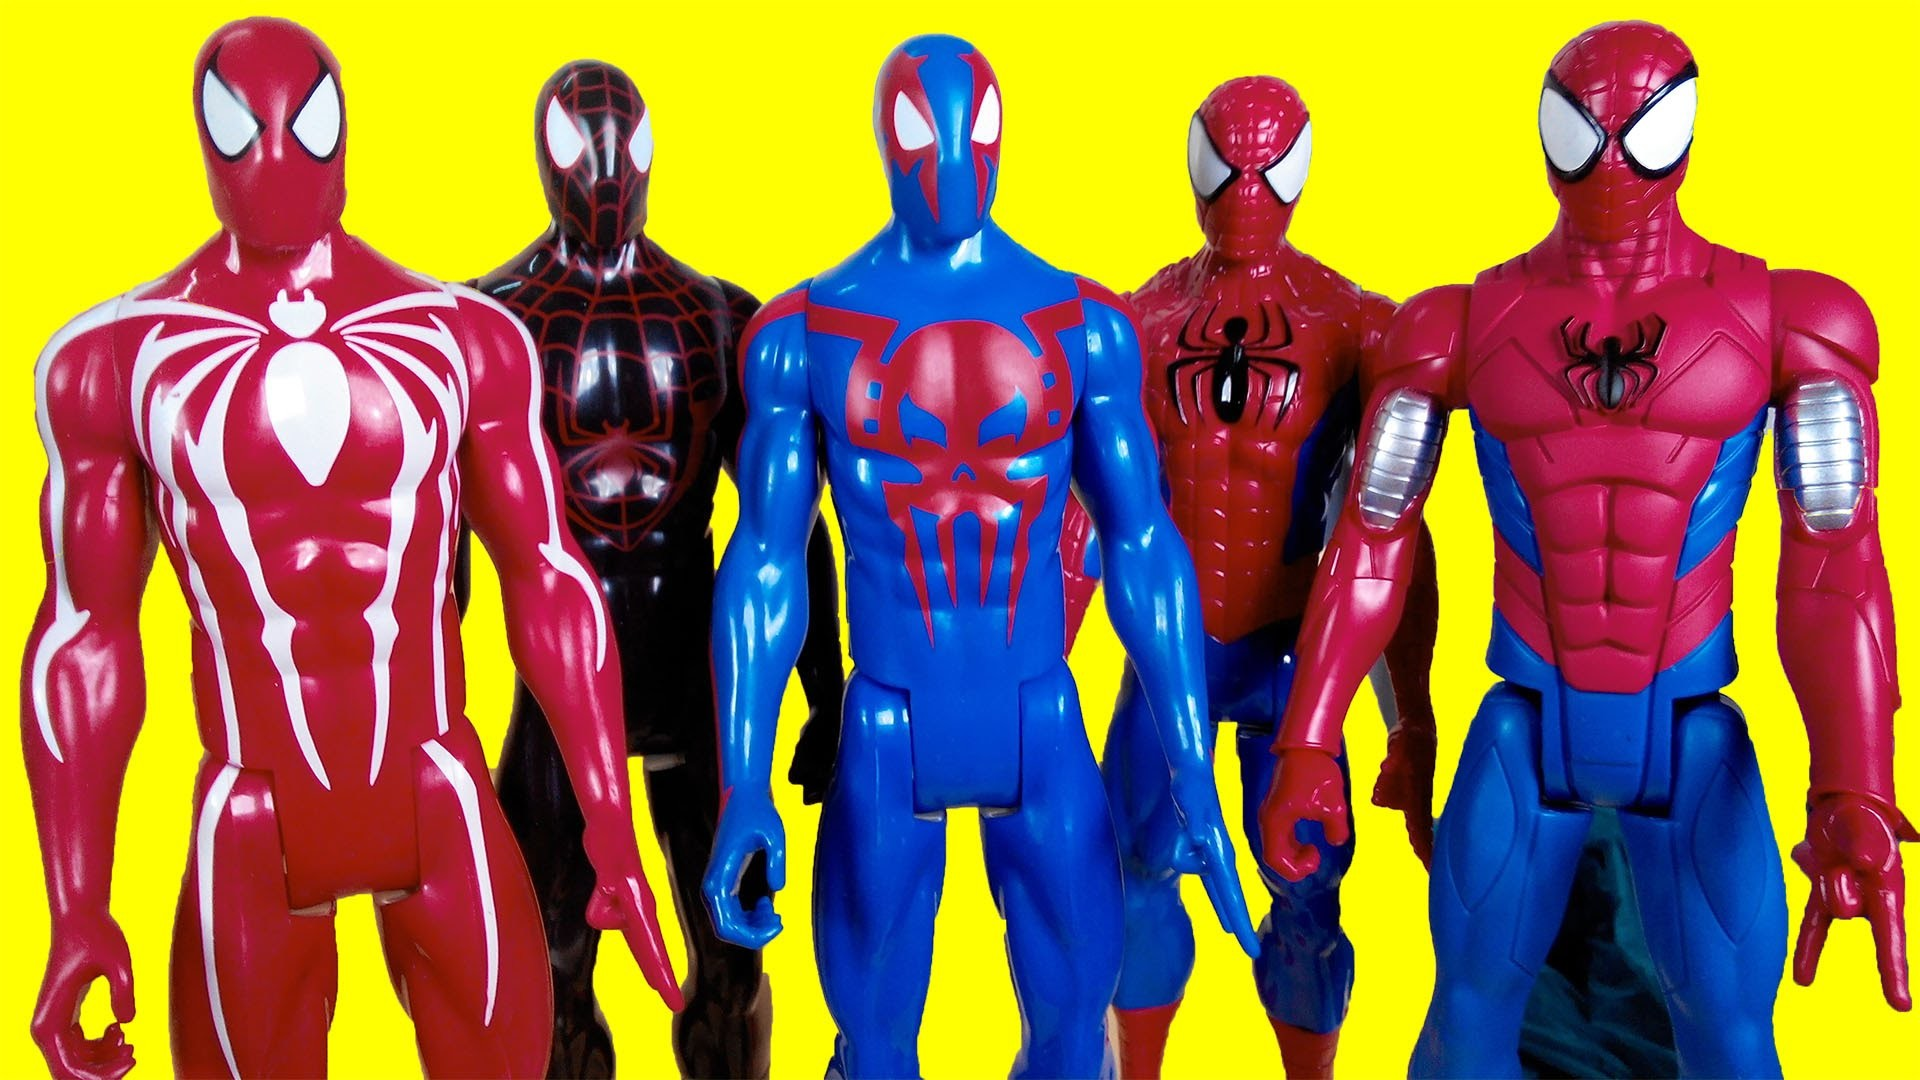 Spiderman with web copter, spider man armor suit, Spider man 2099, Iron  Spider, Spiderman black suit – YouTube